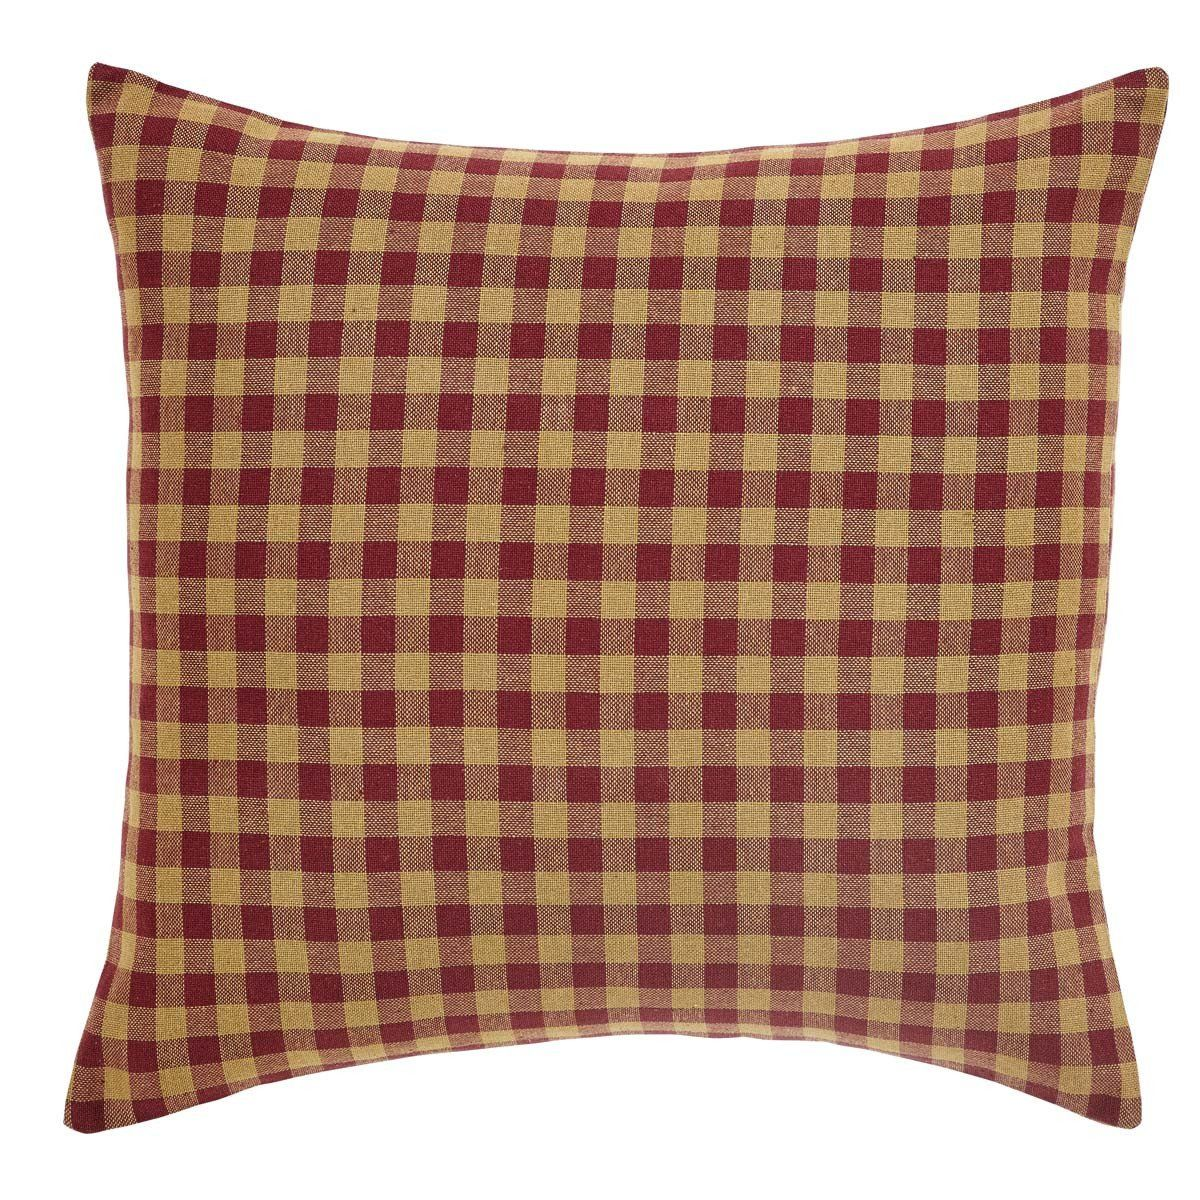 Burgundy check fabric filled pillow x pillows and products